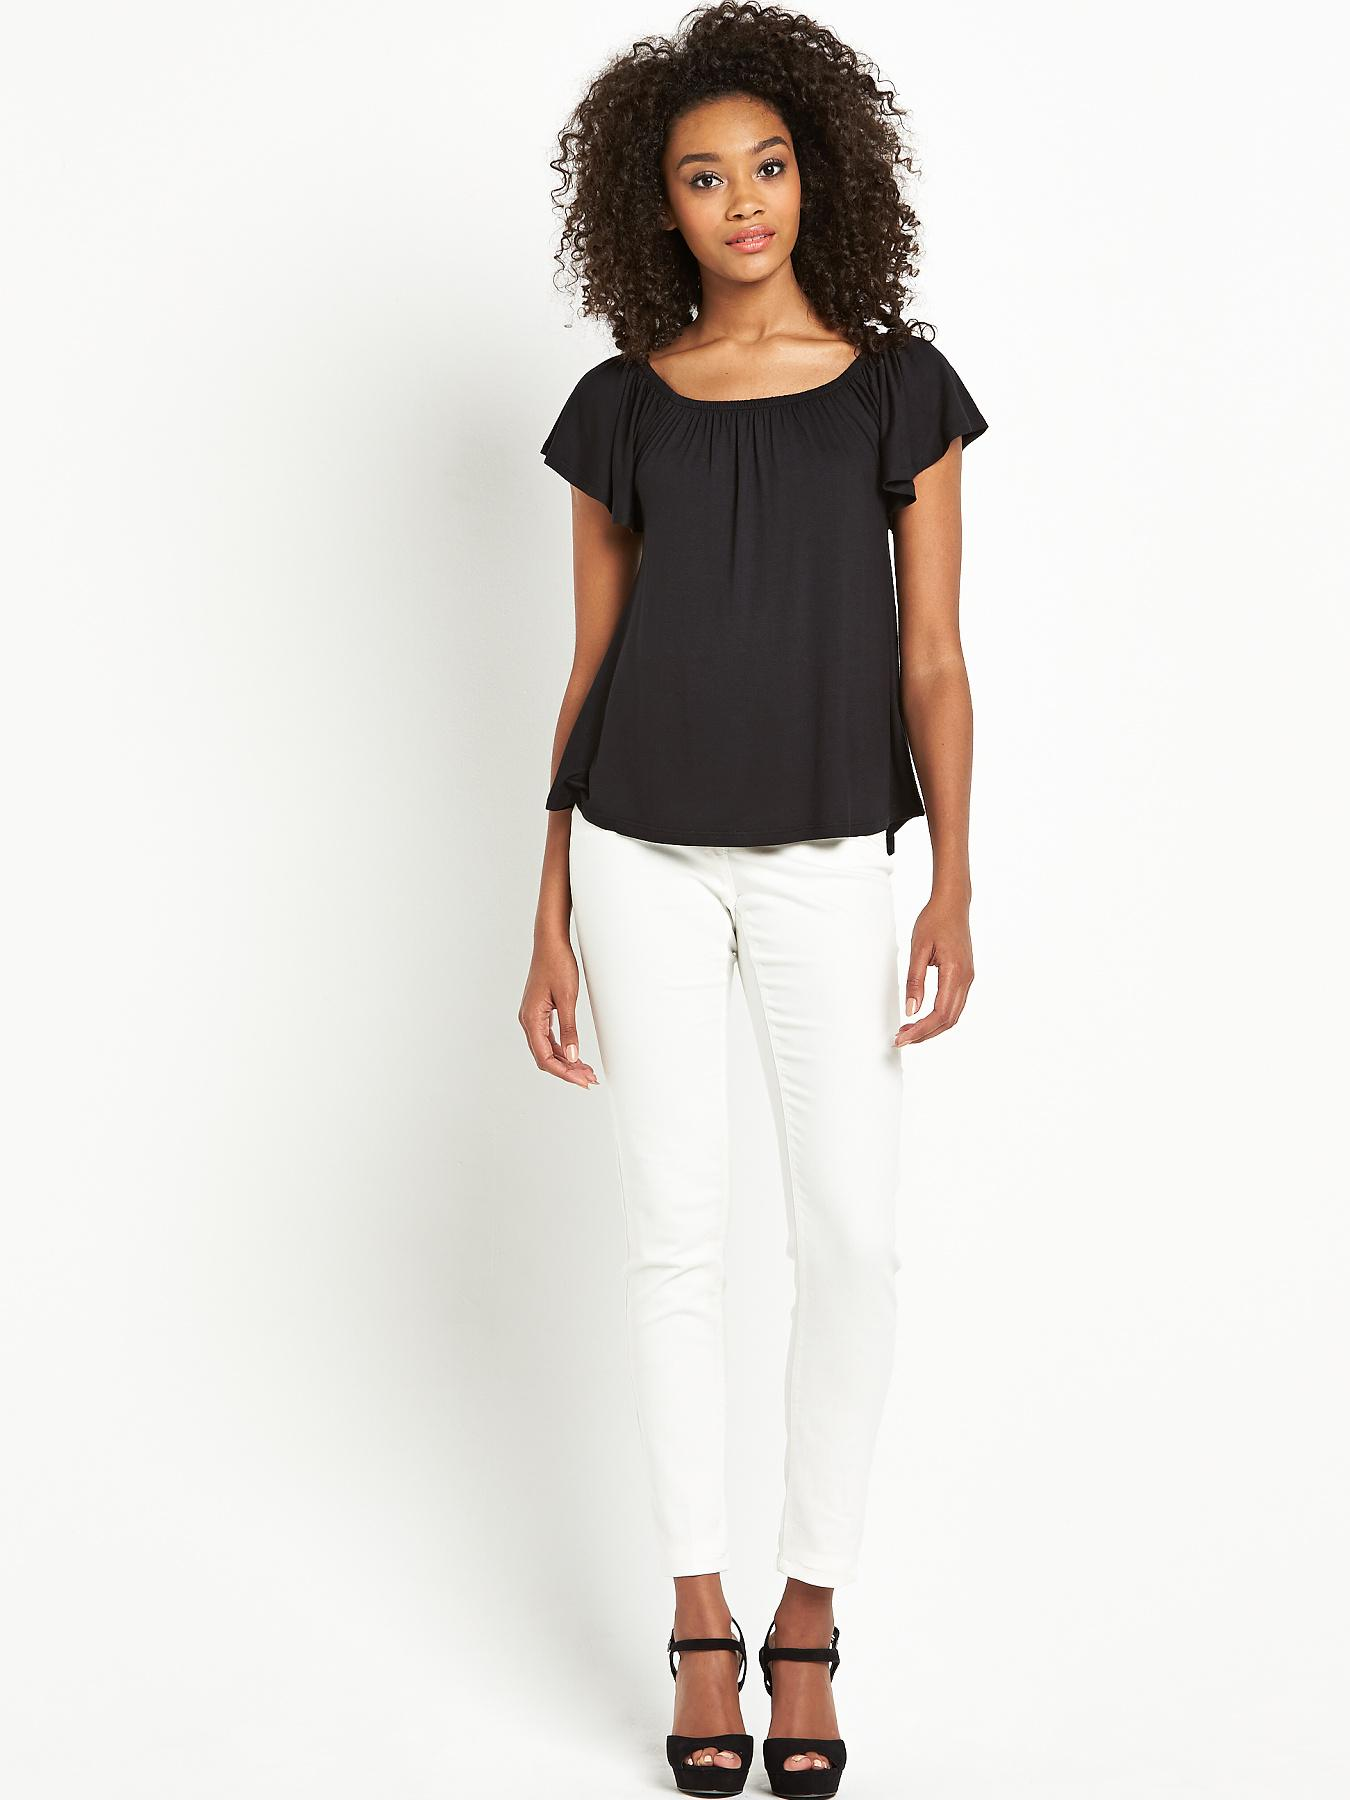 Definitions Ruffle Frill Top